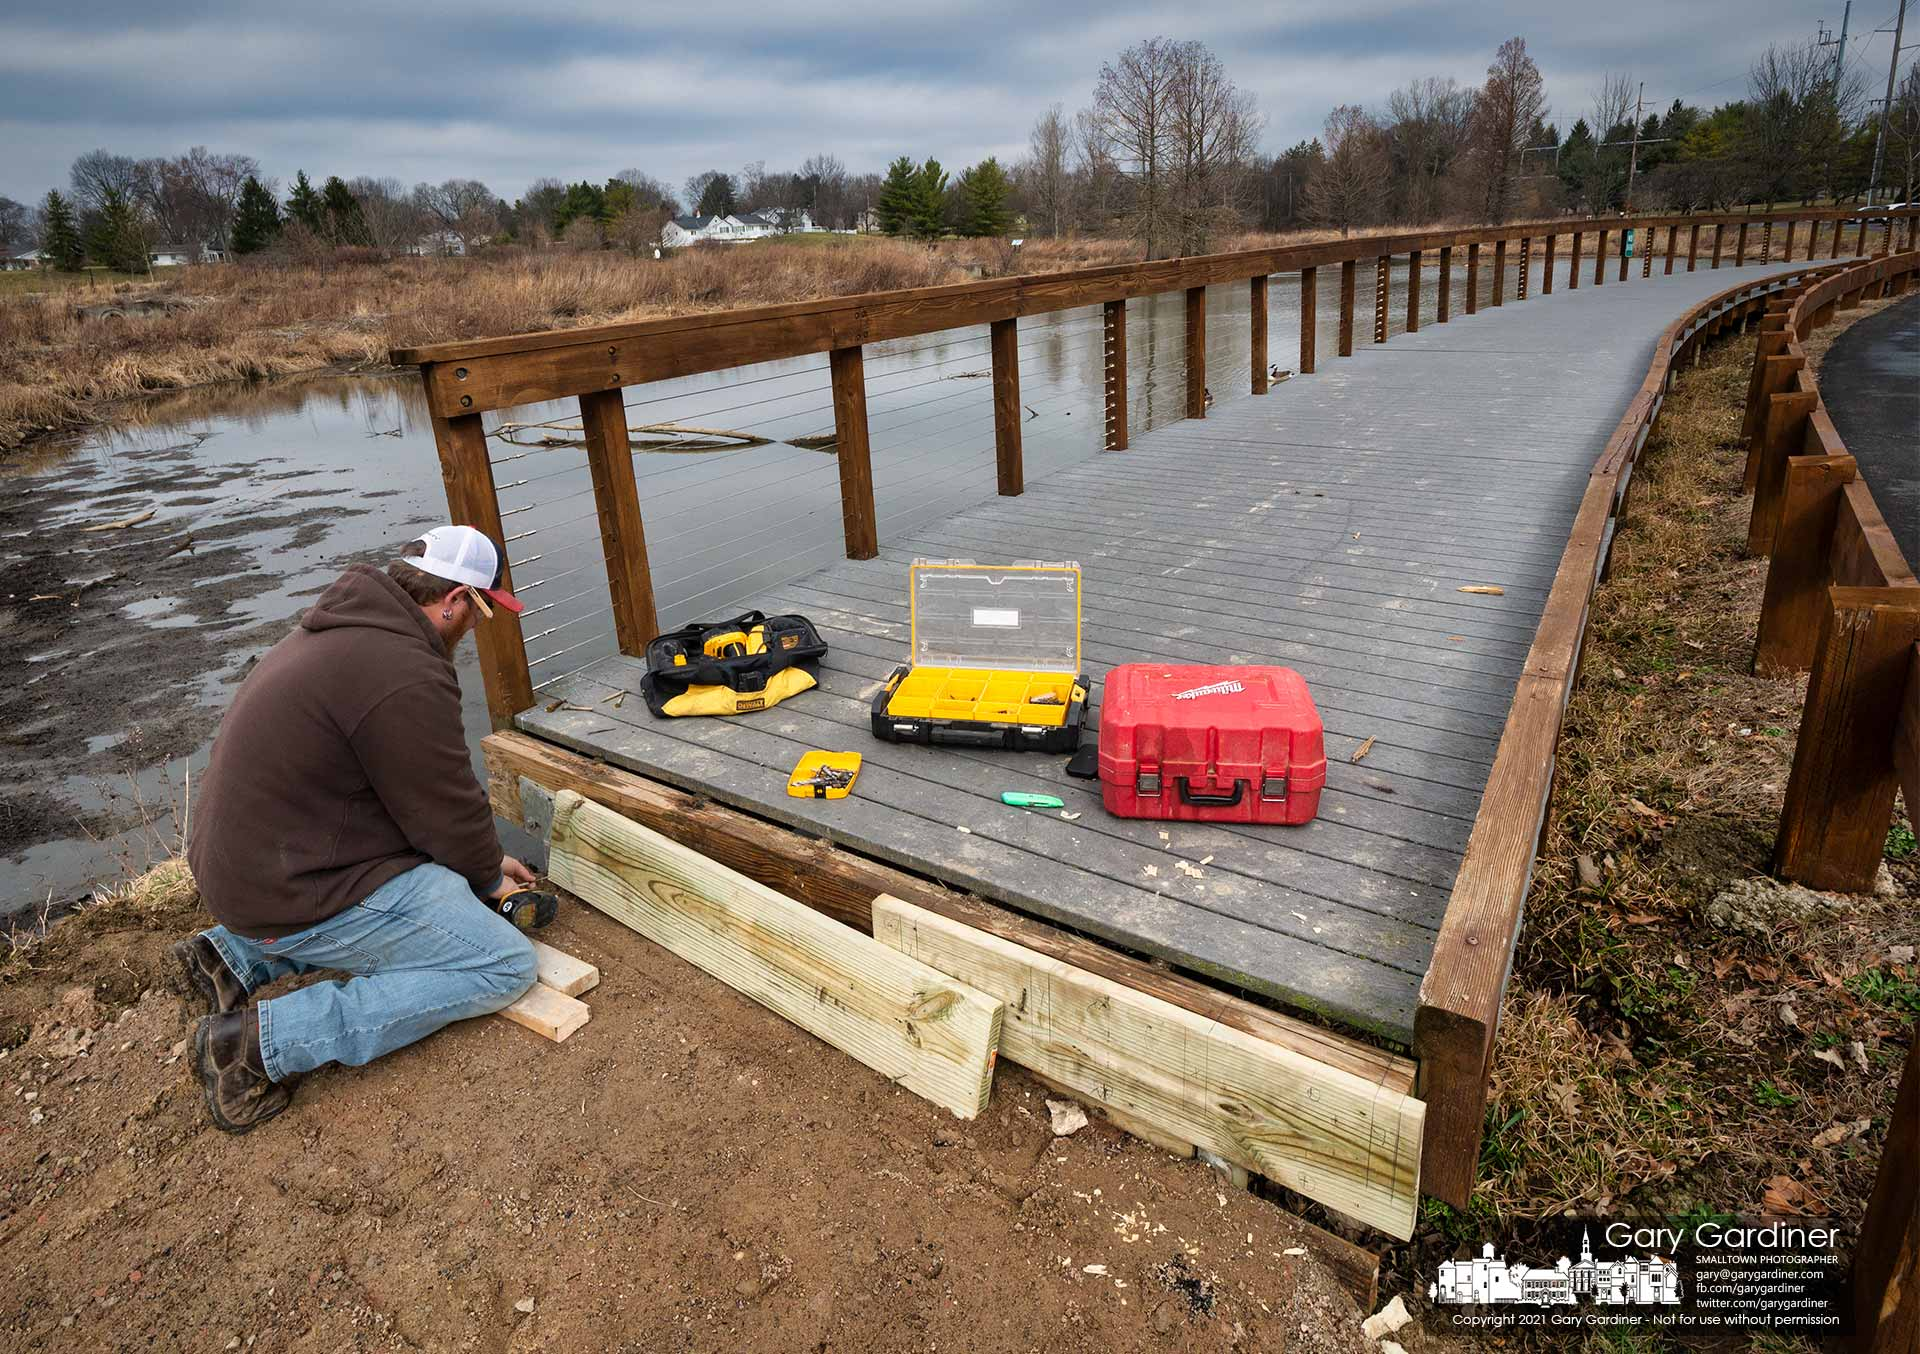 A carpenter attaches header boards to a section of the walkway at Highlands wetlands being rebuilt to create a ramp leading to the sidewalk. My Final Photo for March 16, 2021.